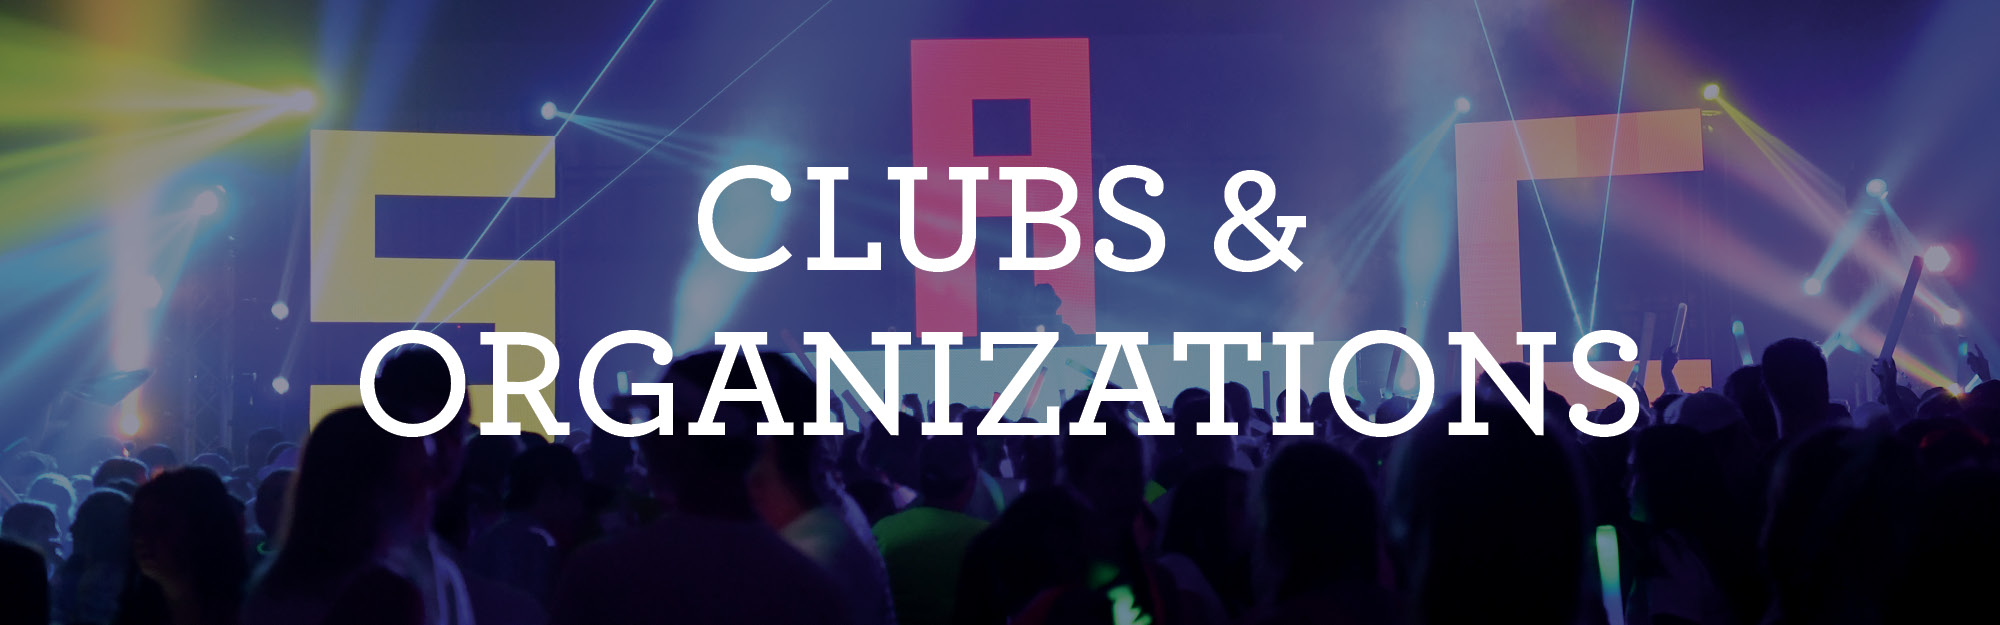 Clubs and organizations information